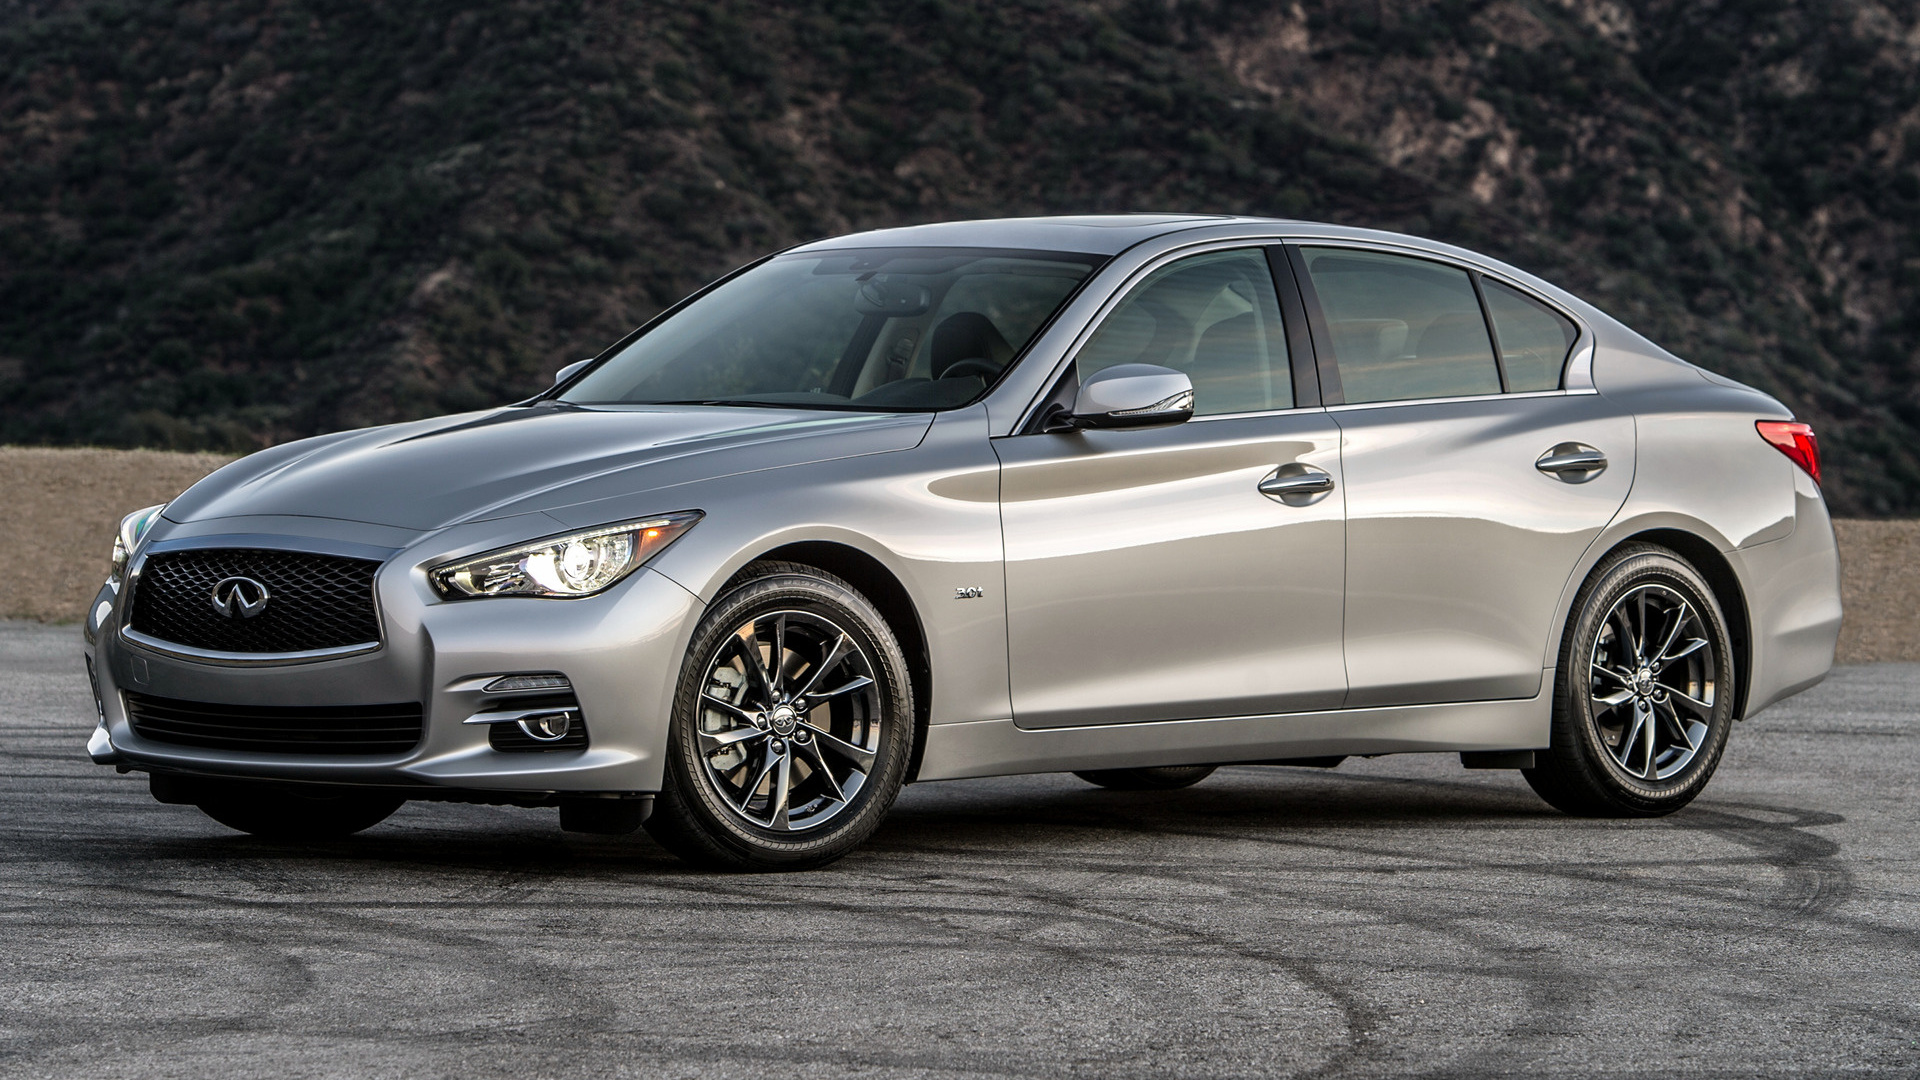 2017 Infiniti Q50 Signature Edition Wallpapers And Hd